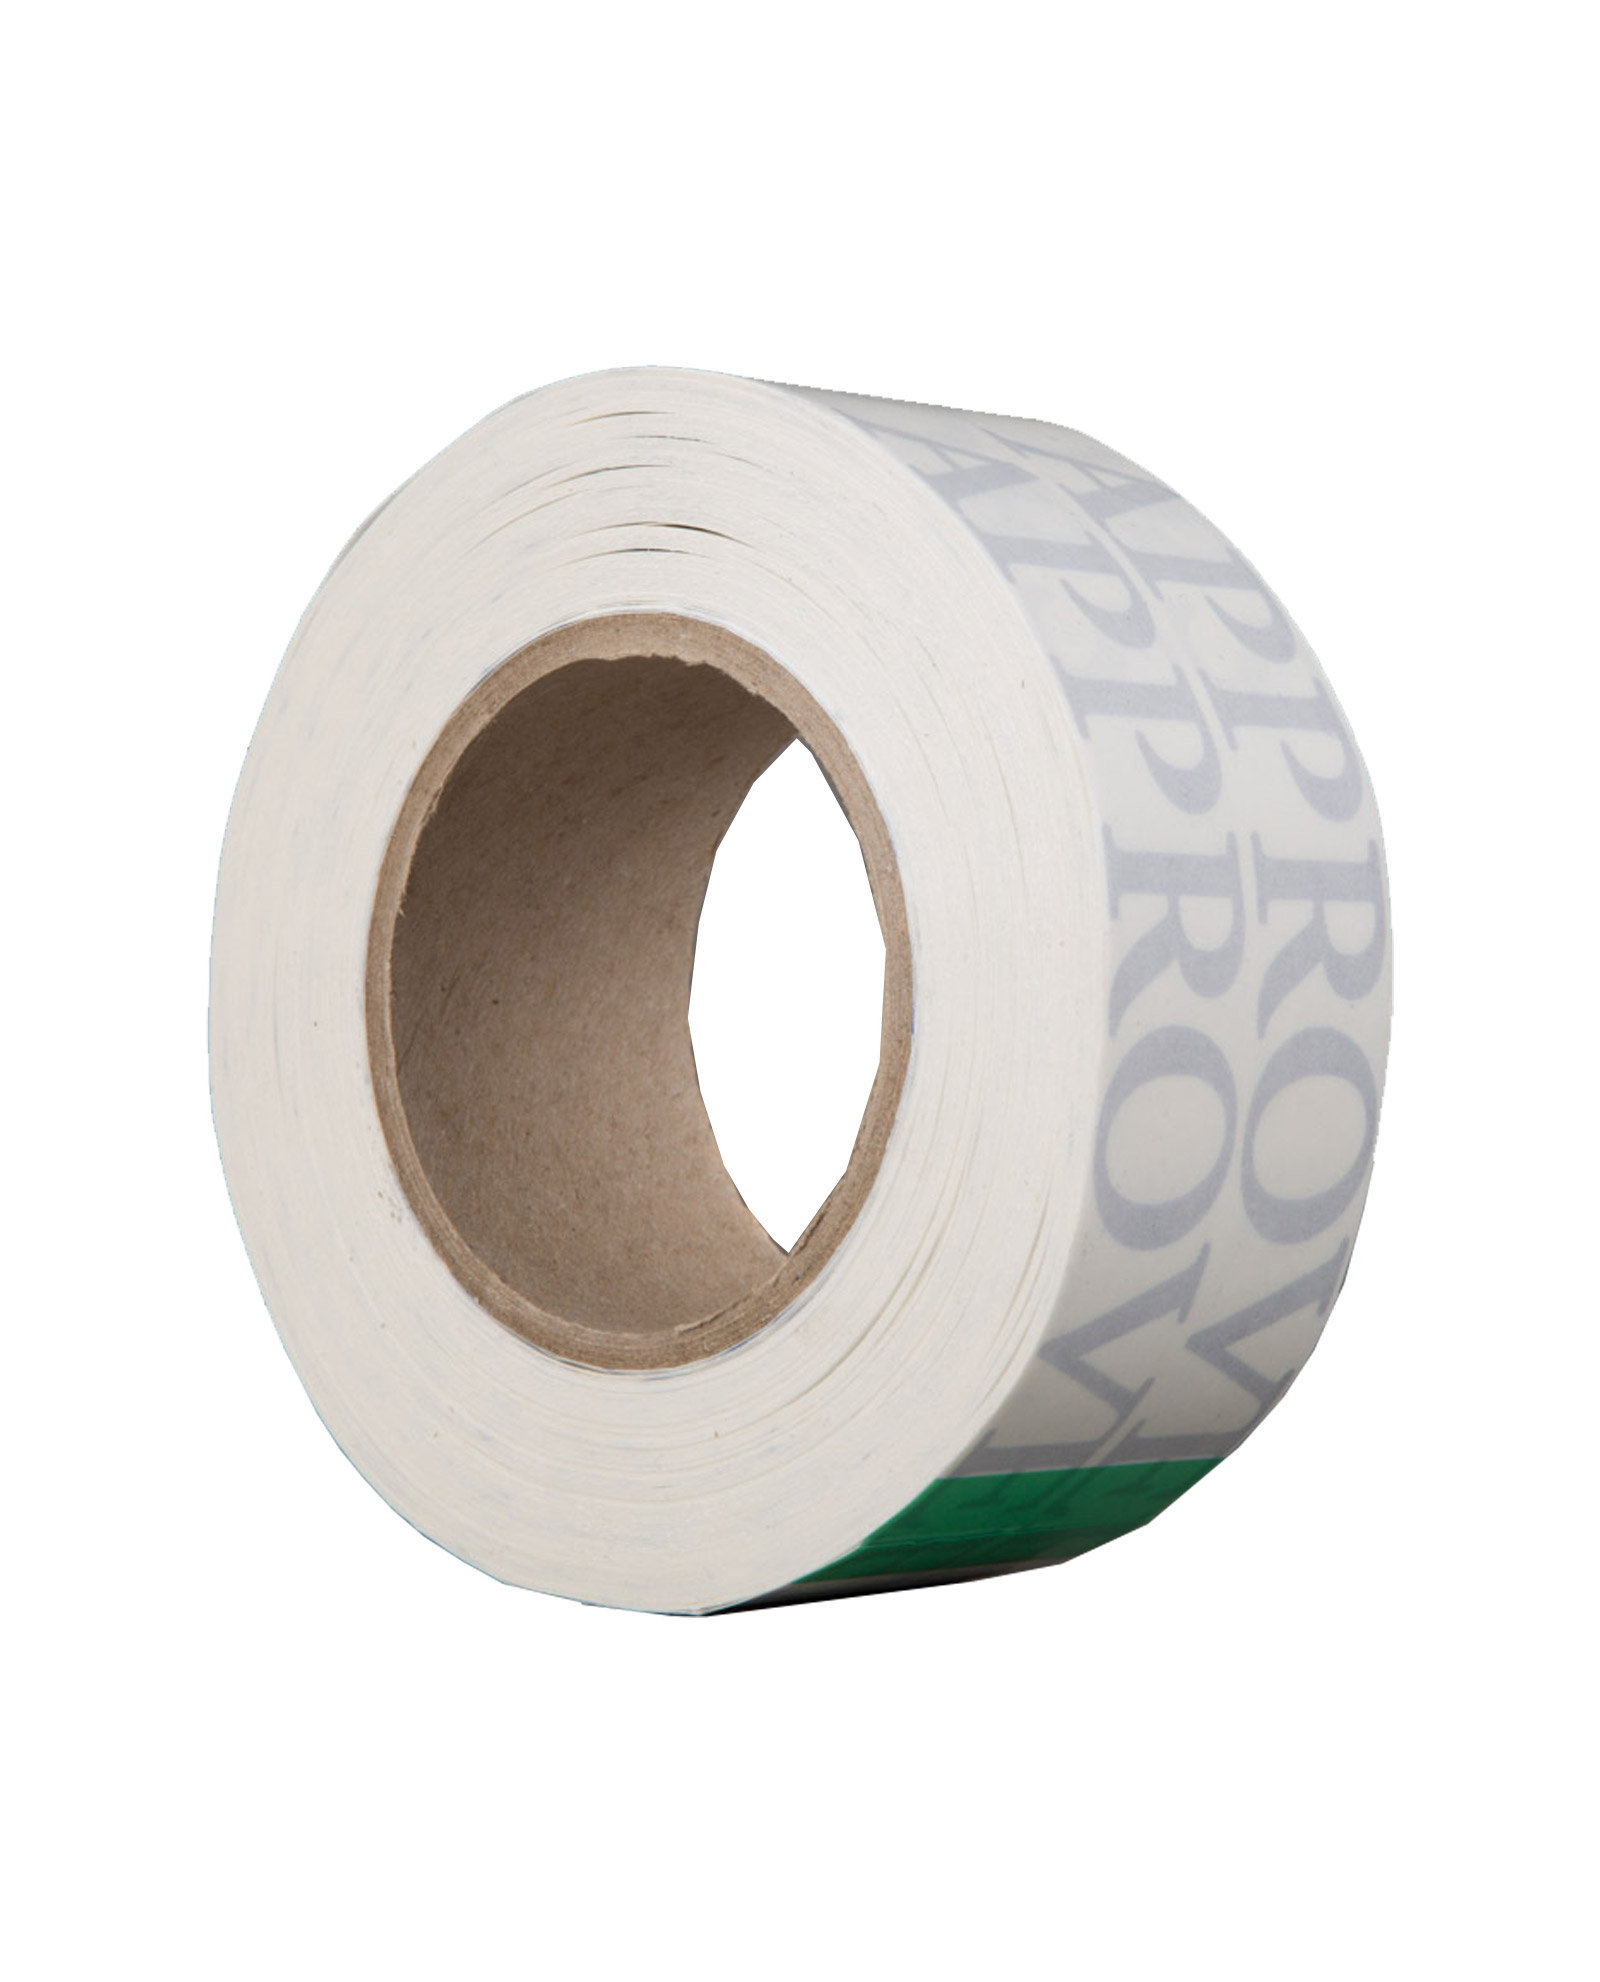 Le Mark Professional Double Sided Nec Approved Tape 50mm X 50m